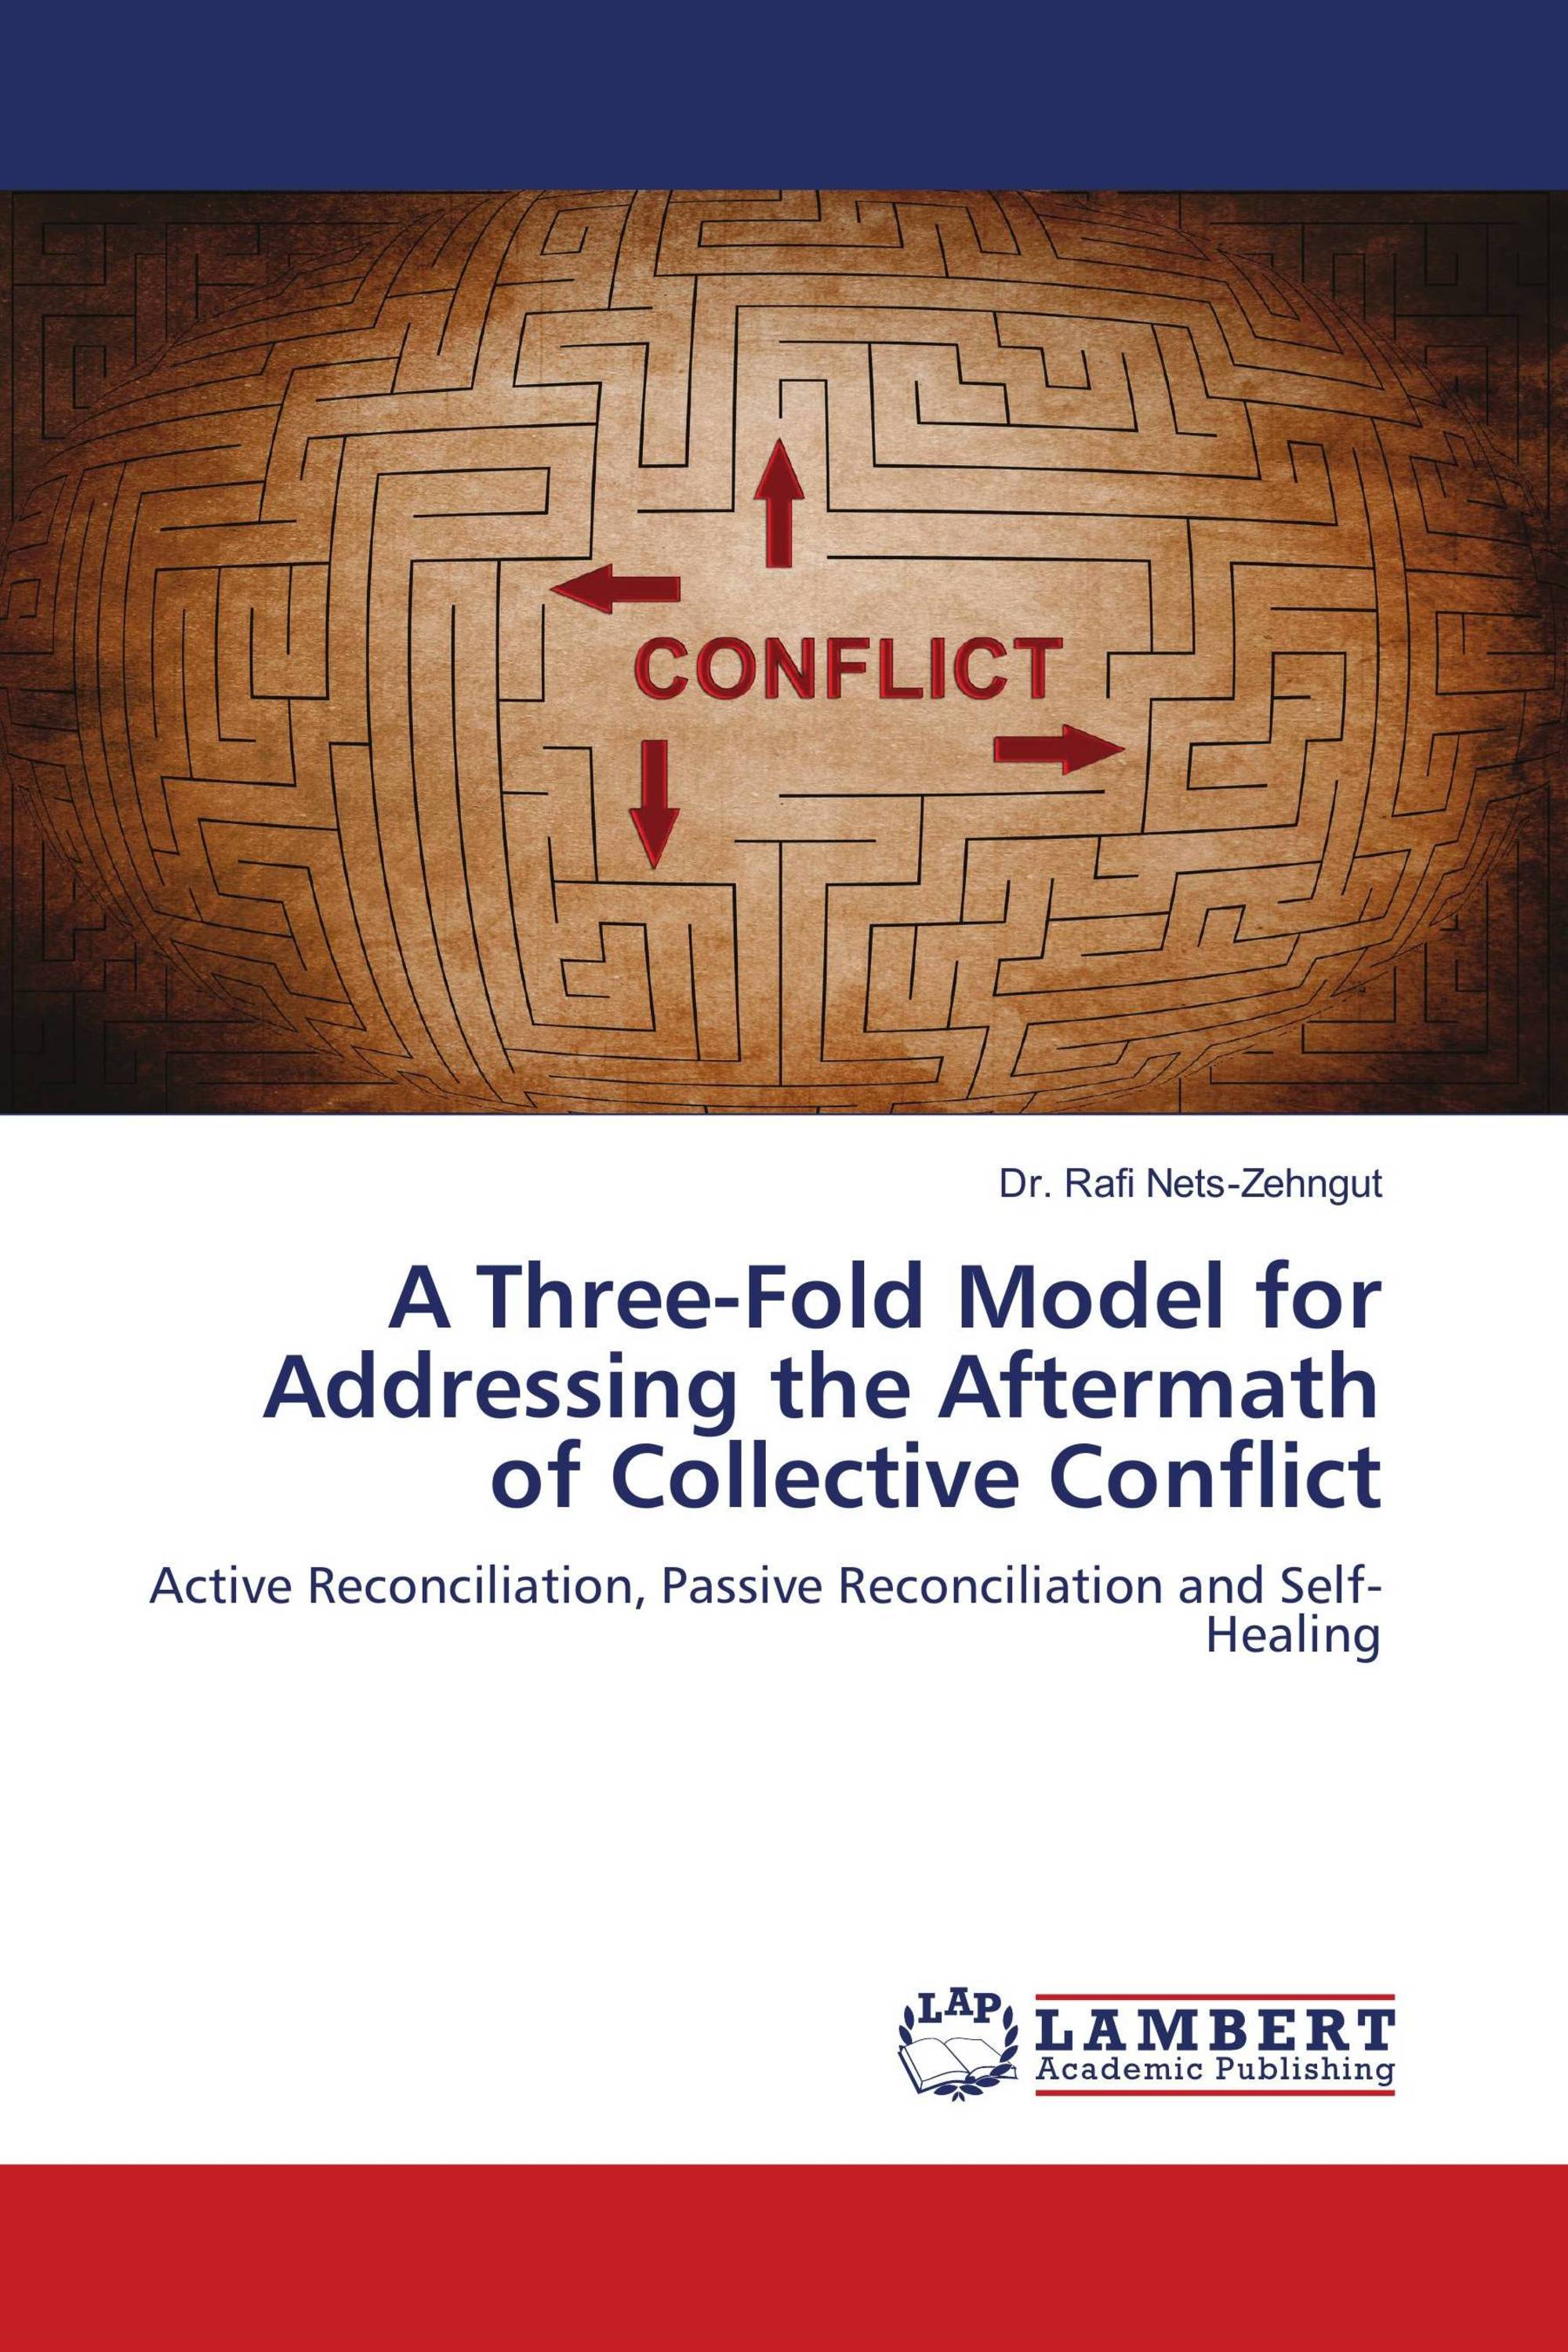 A Three-Fold Model for Addressing the Aftermath of Collective Conflict